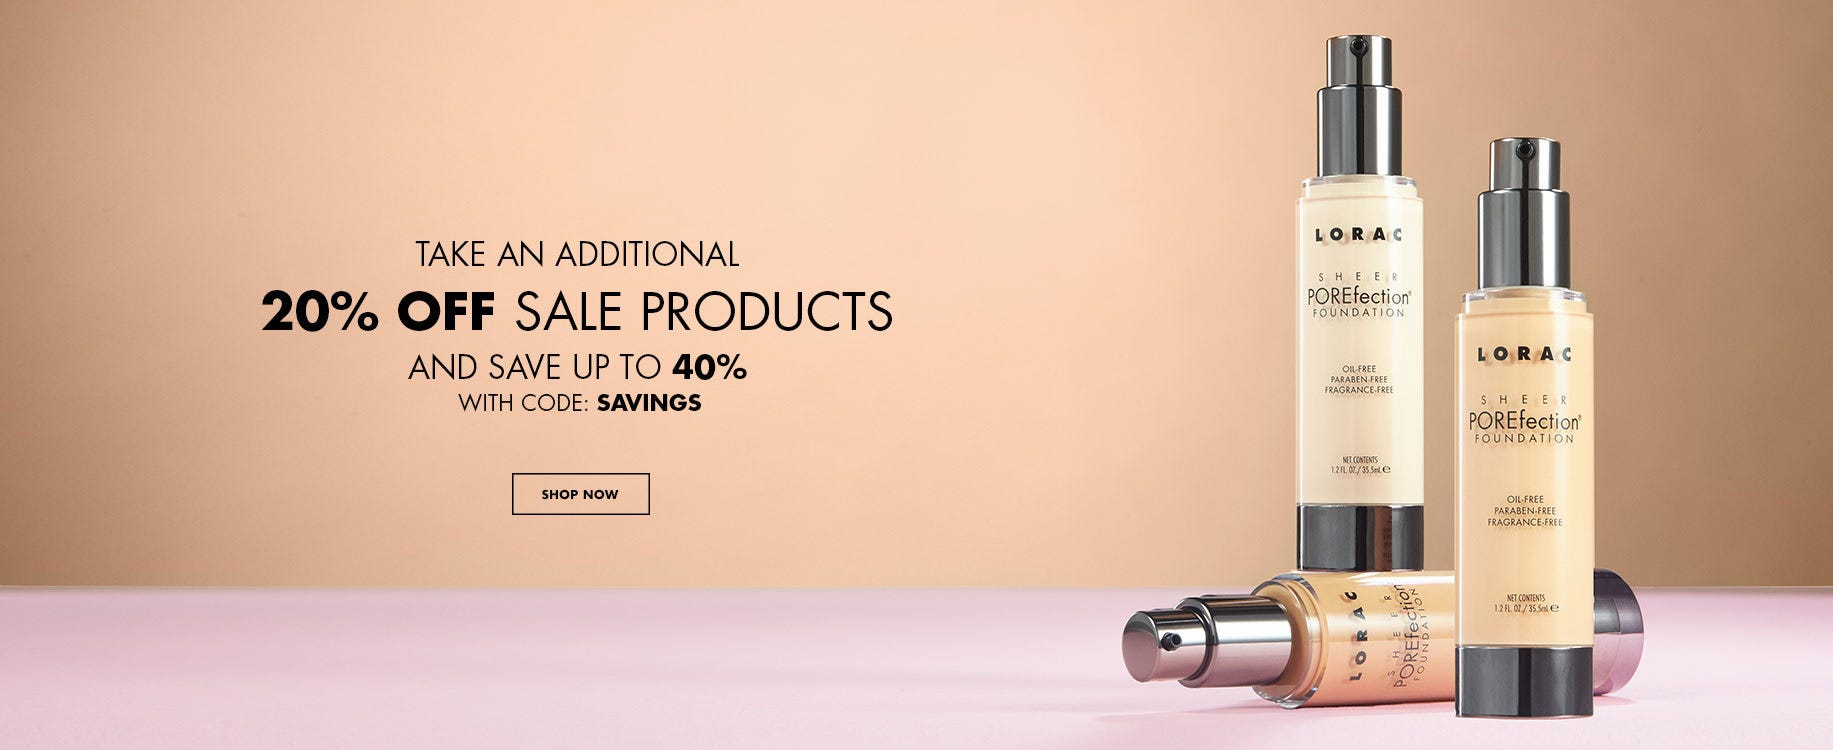 Take An Additional 20% Off Sale Products